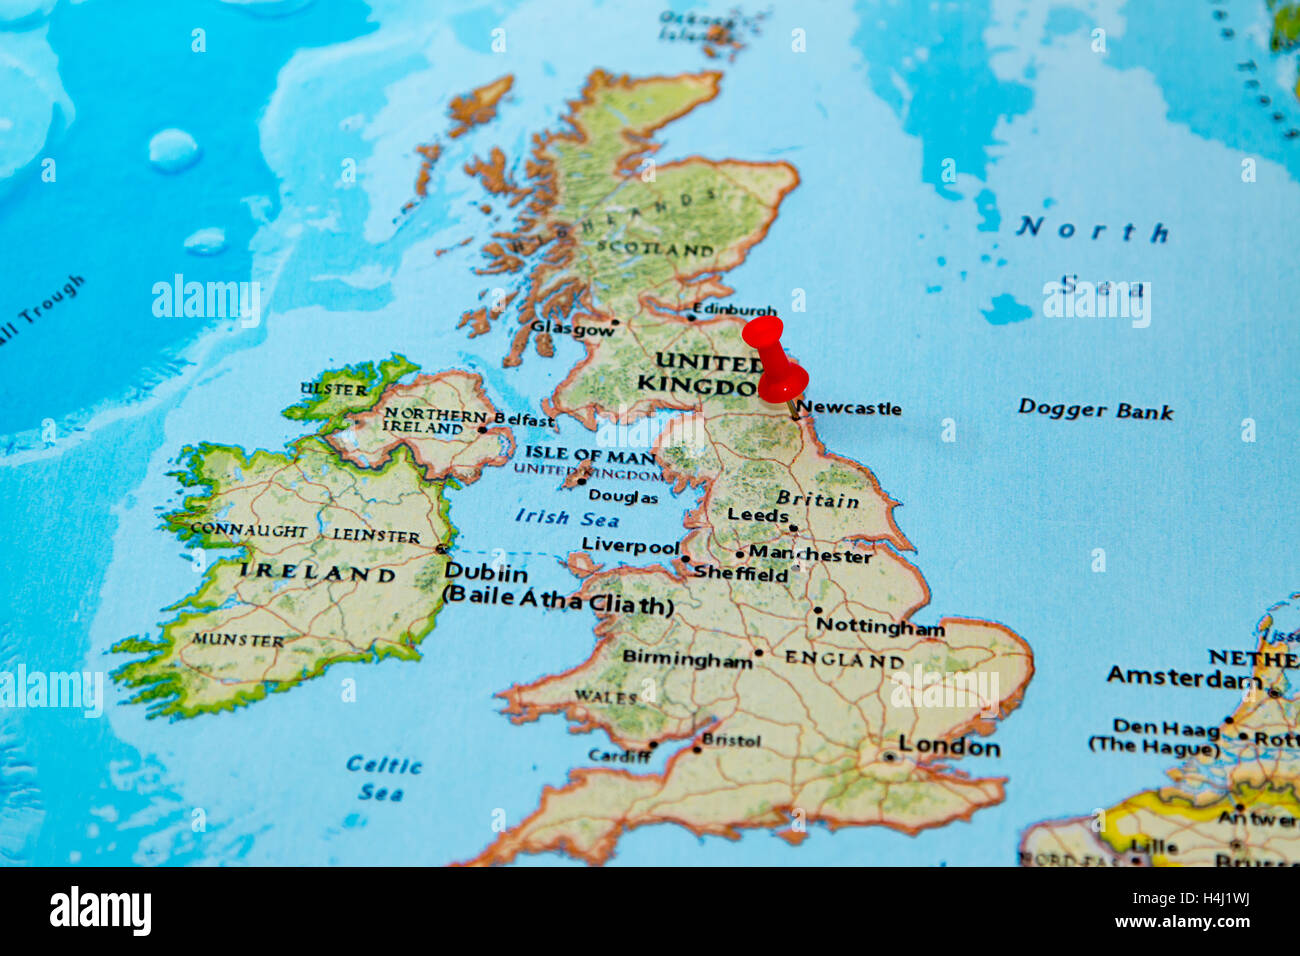 Newcastle Uk Pinned On A Map Of Europe Photo Royalty – Europe and Uk Map